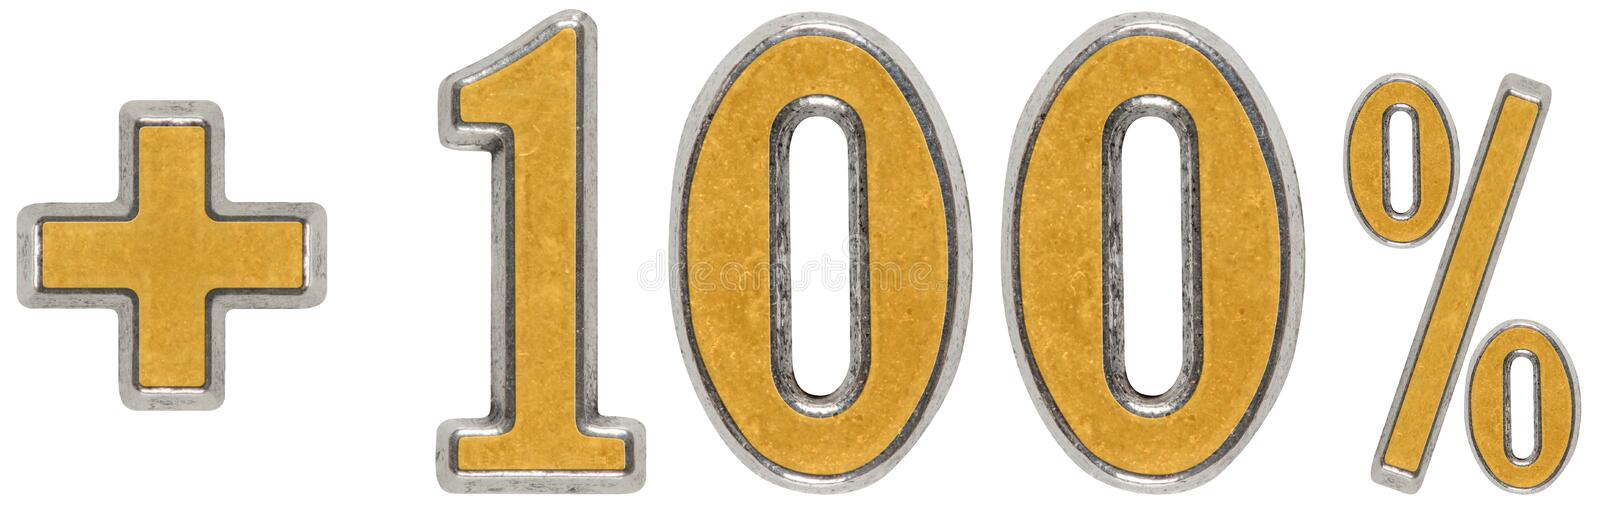 Download Percent Benefits, Plus 100 One Hundred Percent, Numerals Isolate Stock Photo - Image: 83711377